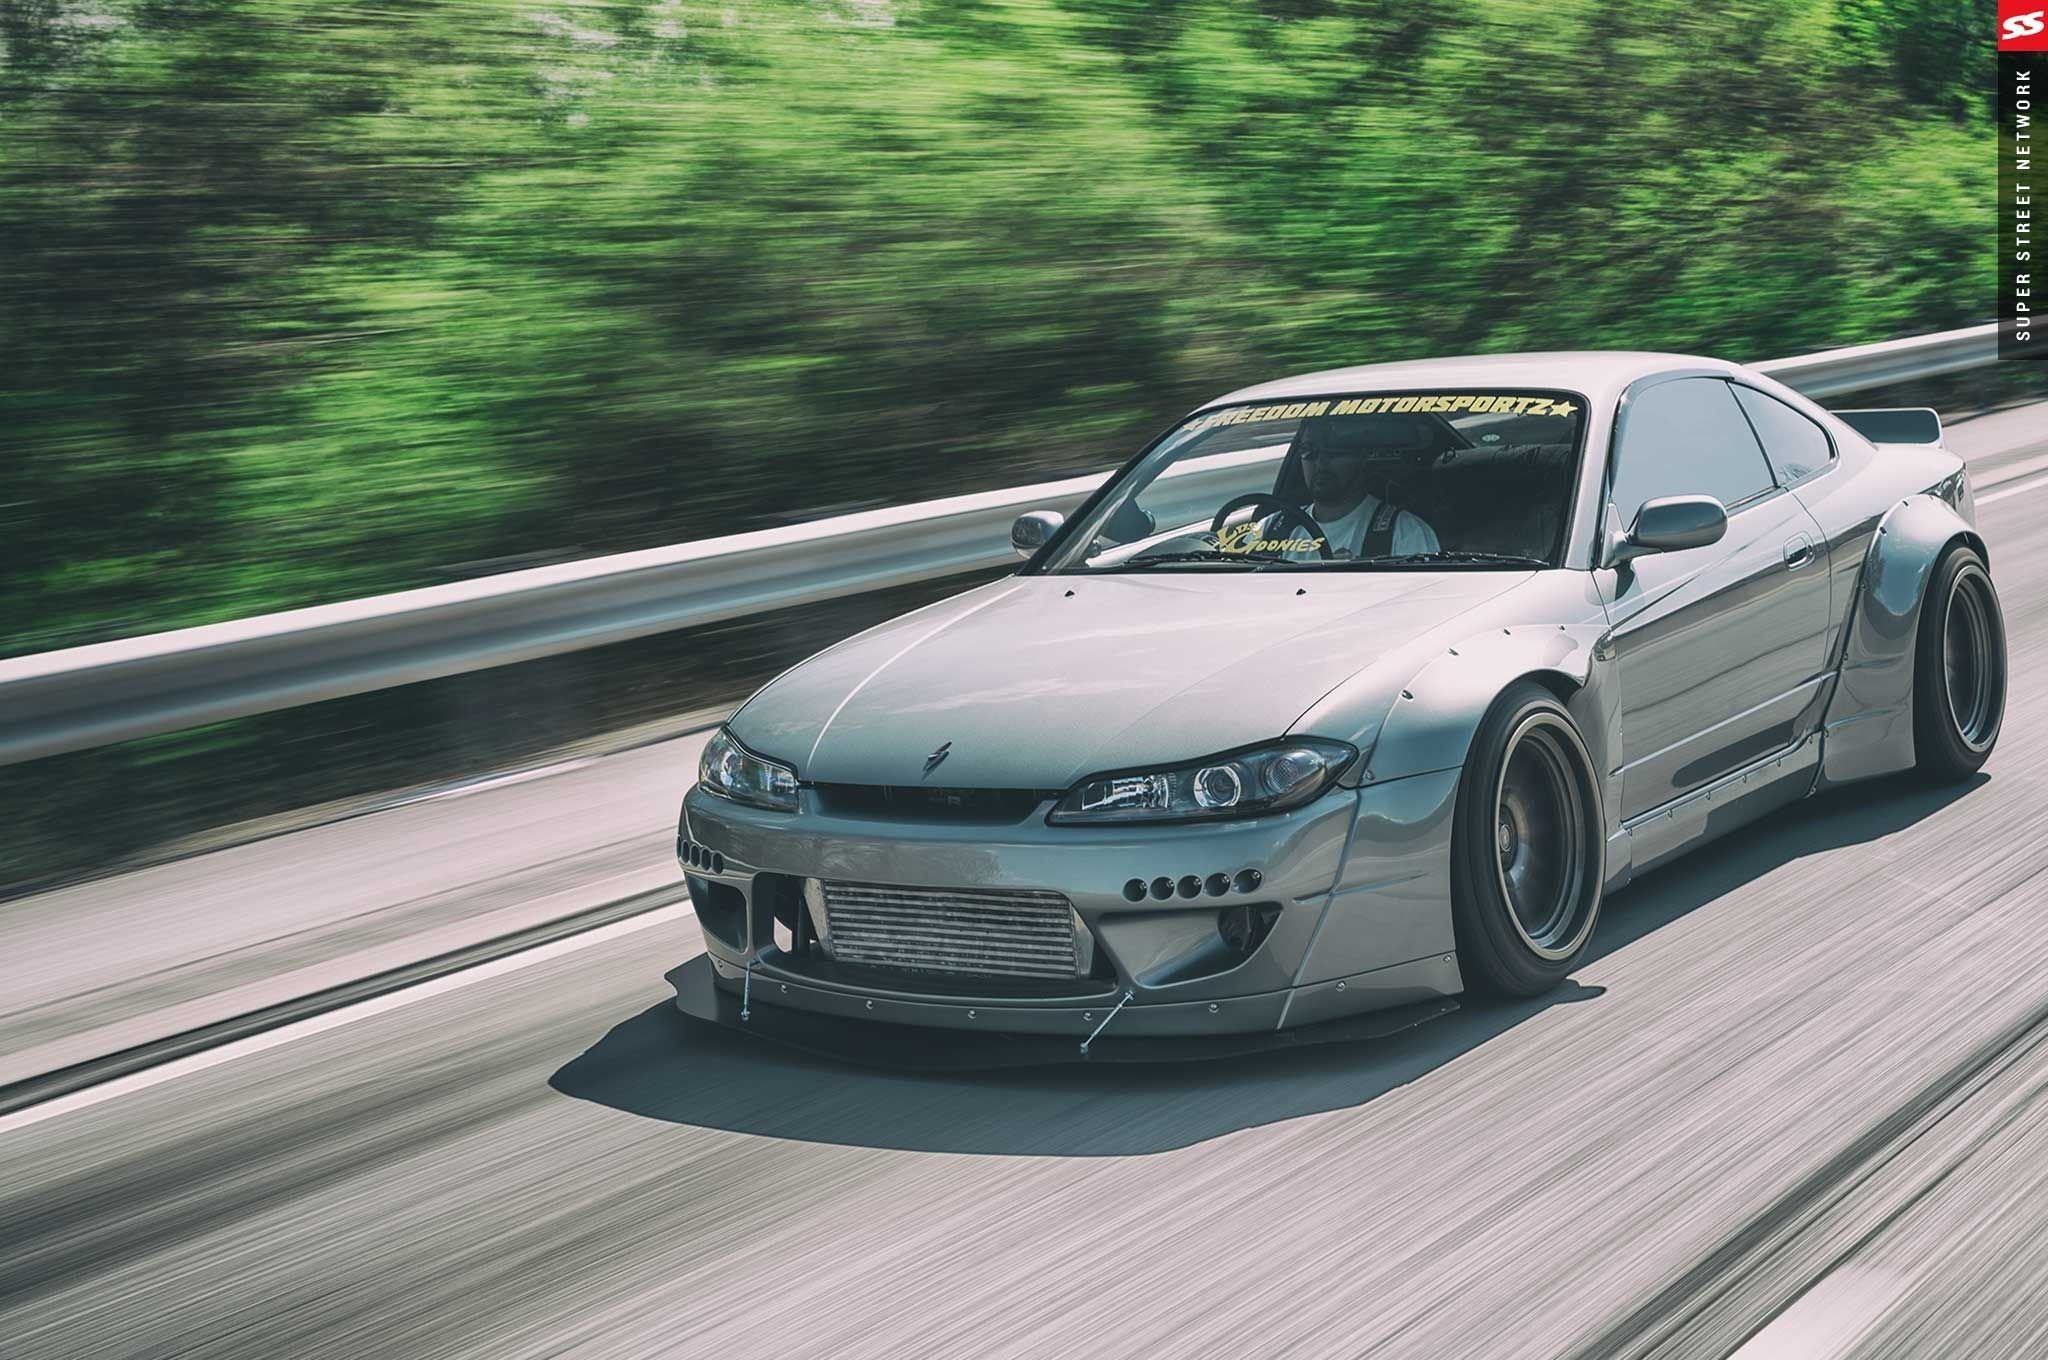 Rocket Bunny Nissan Silvia S15 cars coupe bodykit modified wallpaper |  | 886905 | WallpaperUP